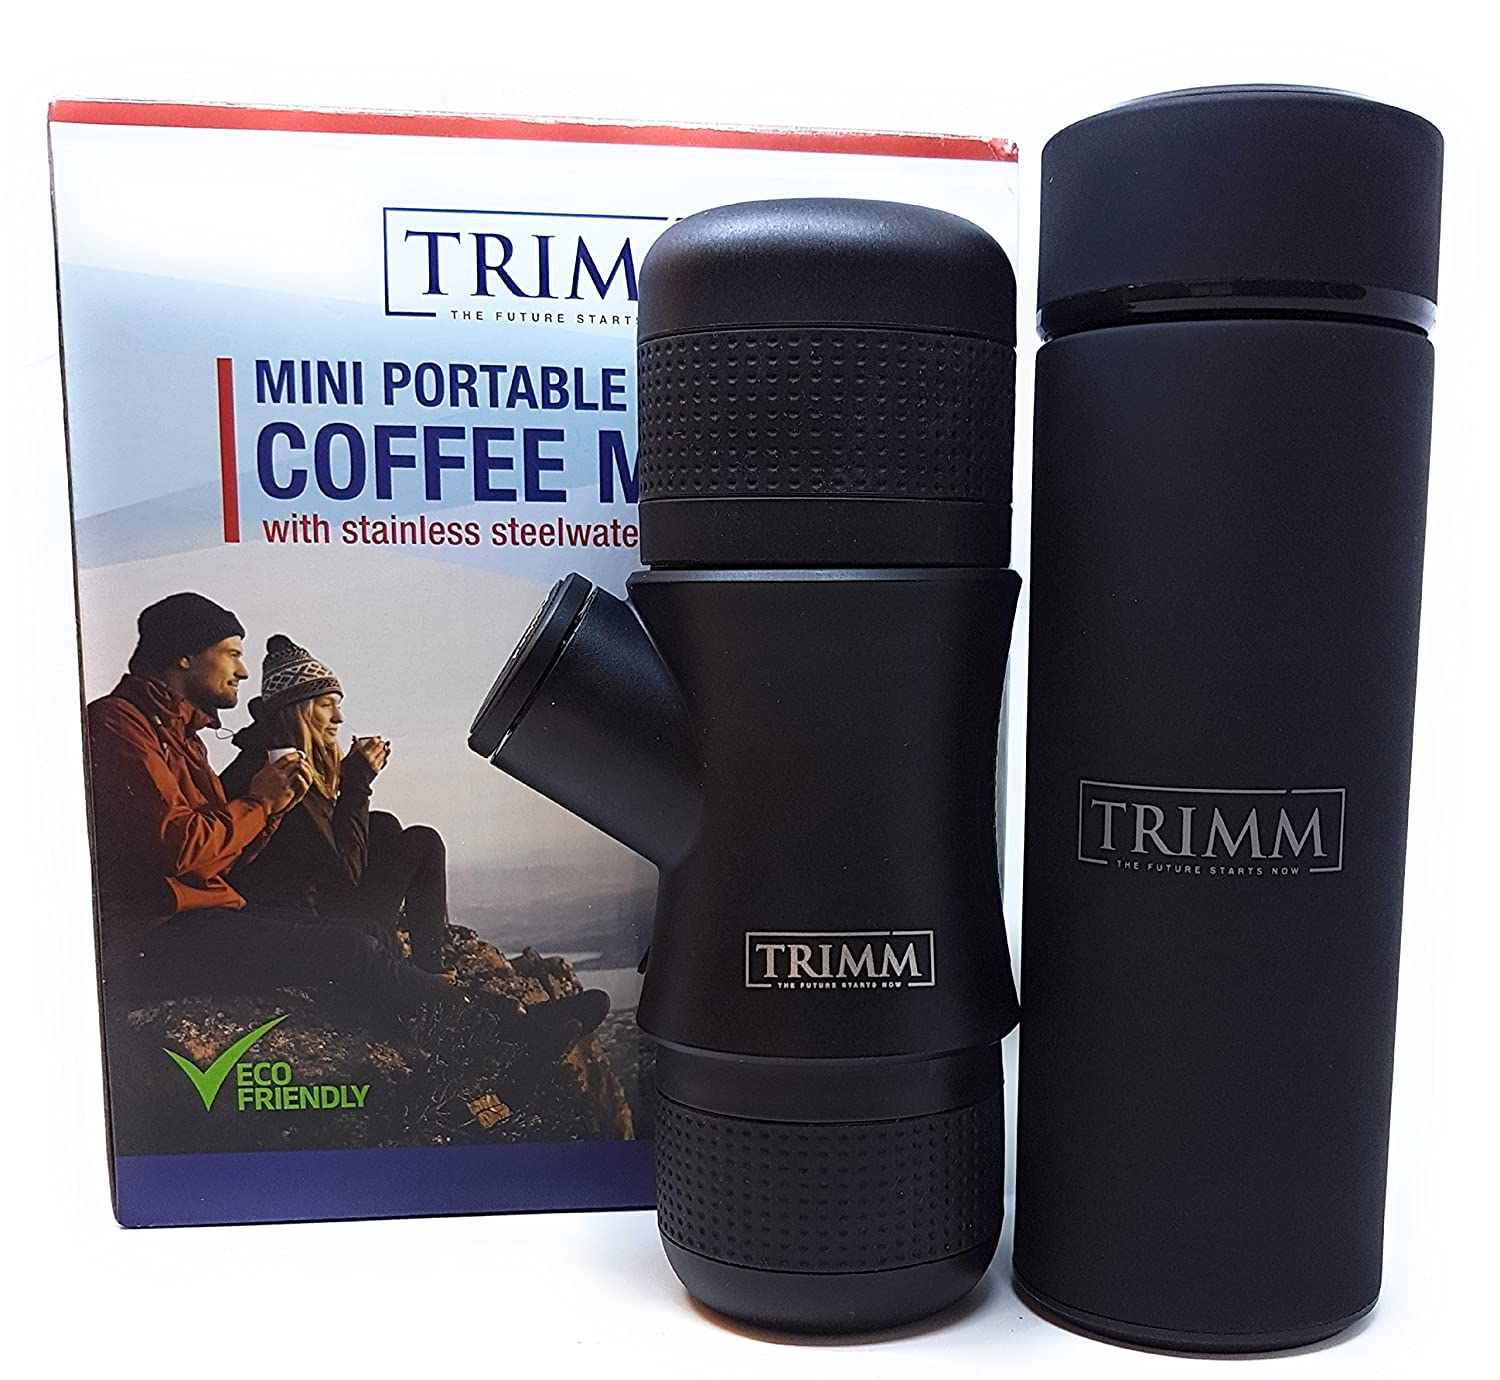 Trimm Portable Hand Held Espresso Machine and Thermos Vacuum Insulated Double Wall | Portable Espresso Maker and Flask | Single Cup Coffee Maker and Tea Thermos Bottle | Travel Set Great Gift Idea